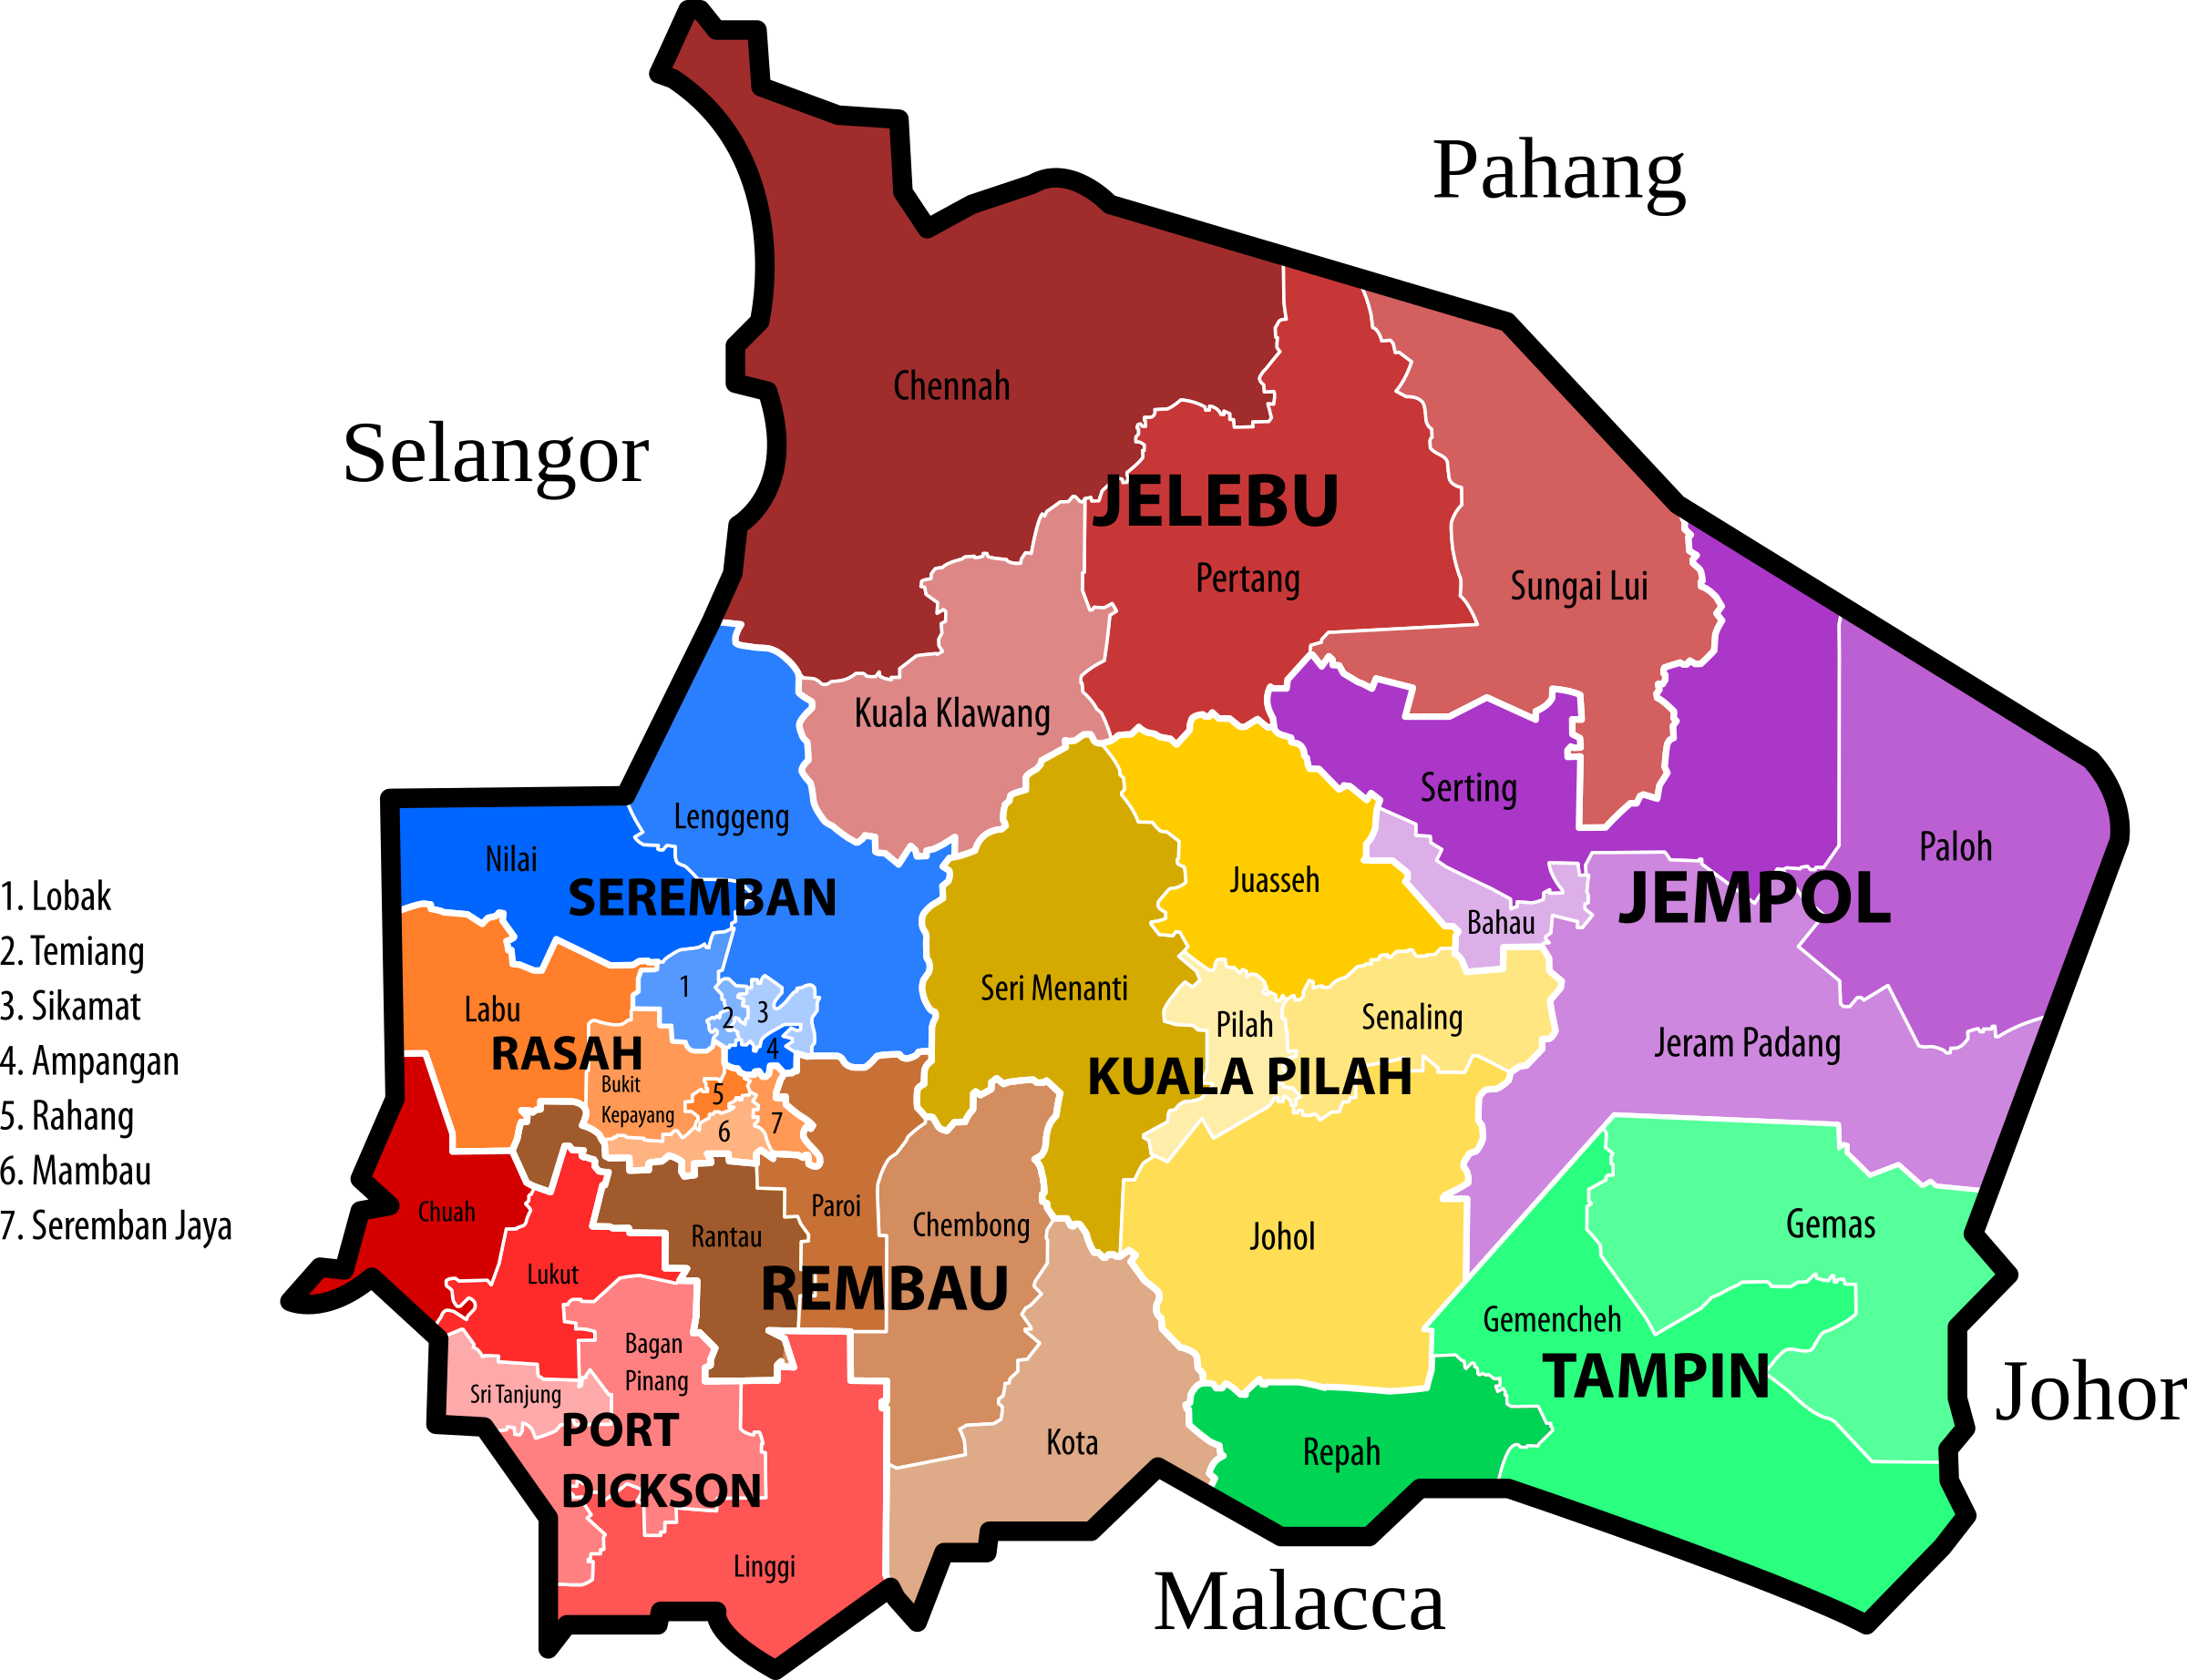 Negeri Sembilan new electoral map (March 2017 revision) by derkommander0916